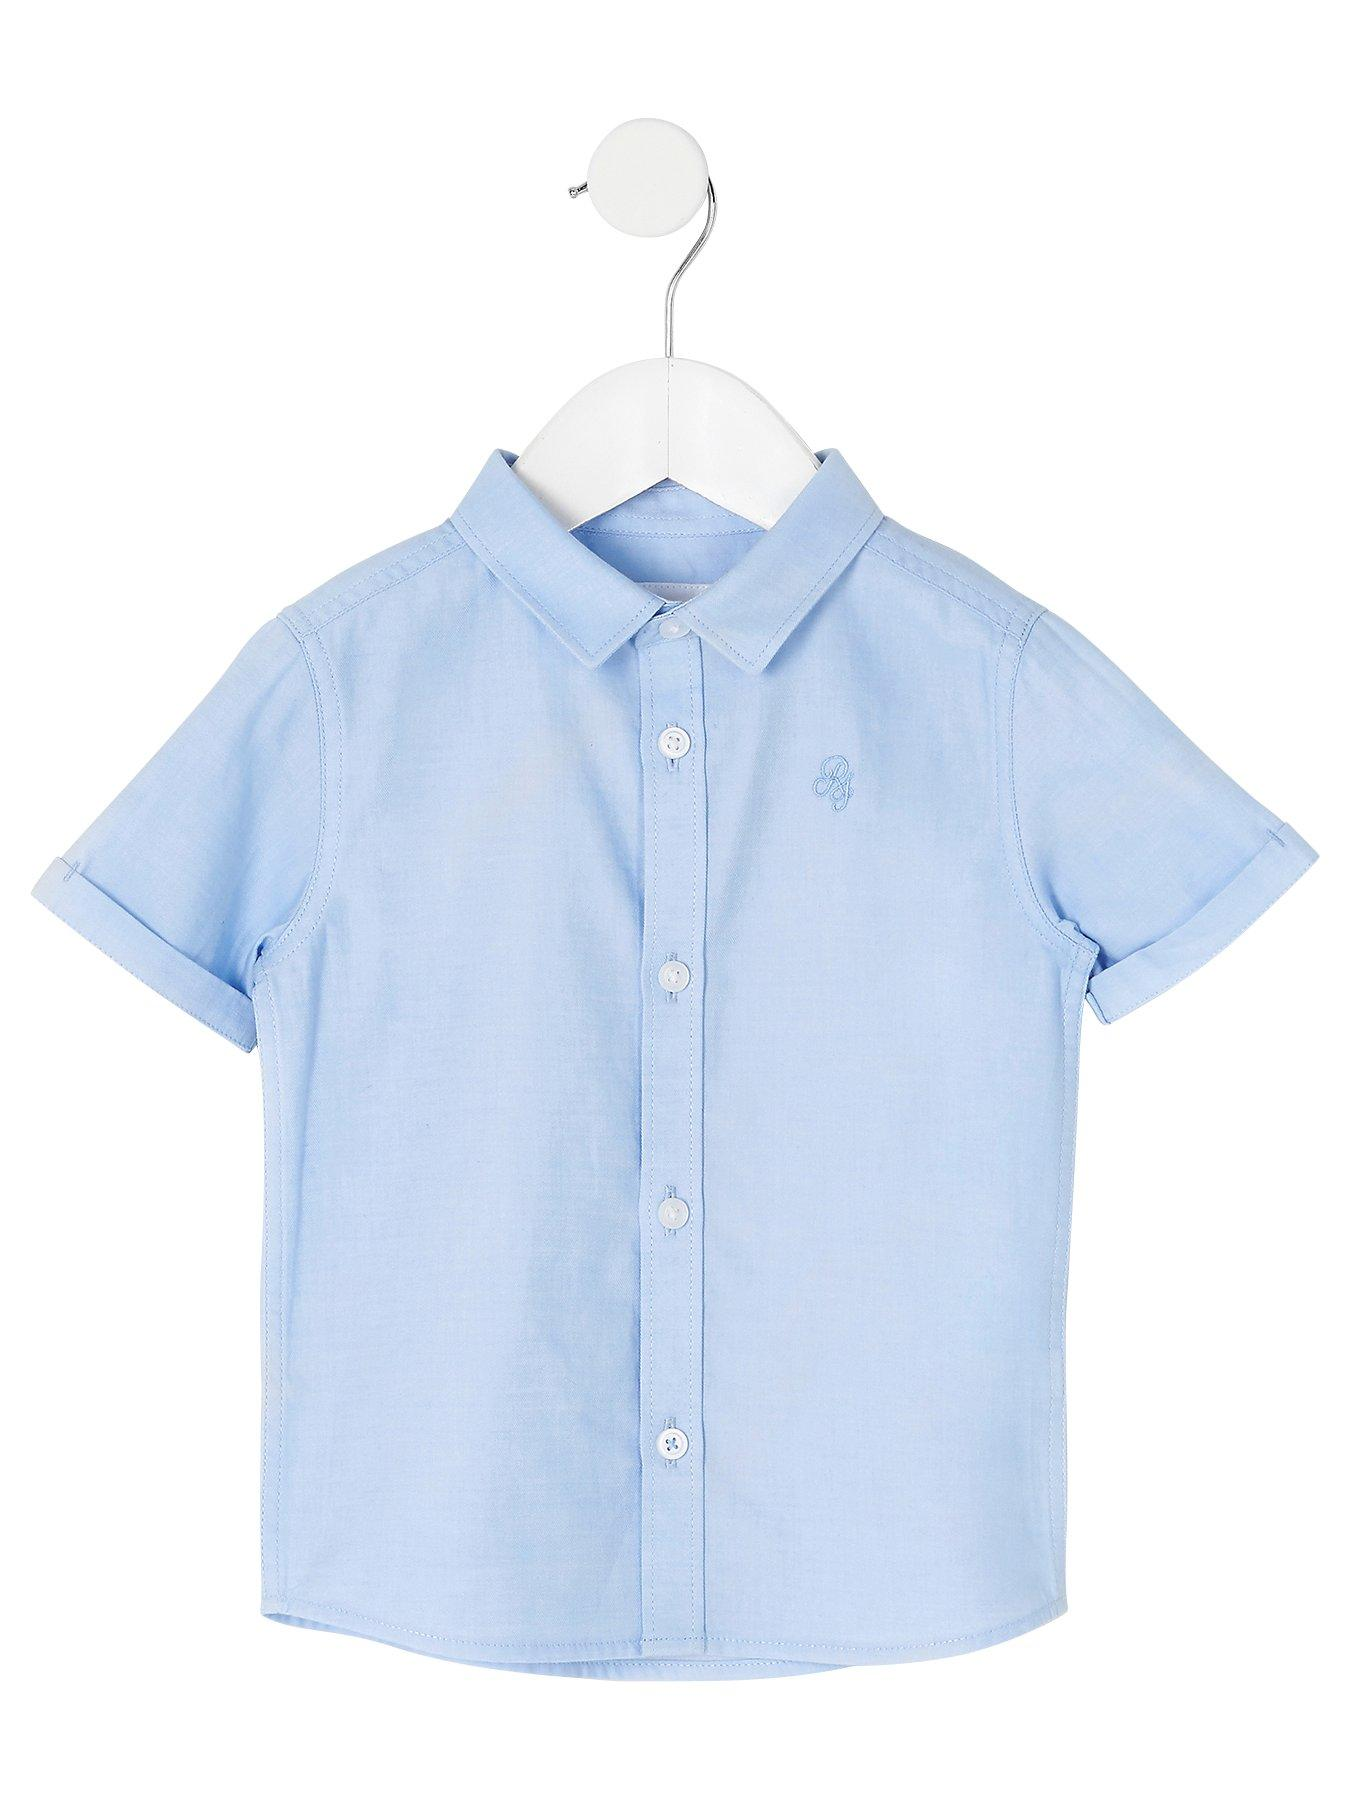 New Boys R/&R at Very  Blue Vintage Cotton Print Polo Shirt Top Size 9-10 Years